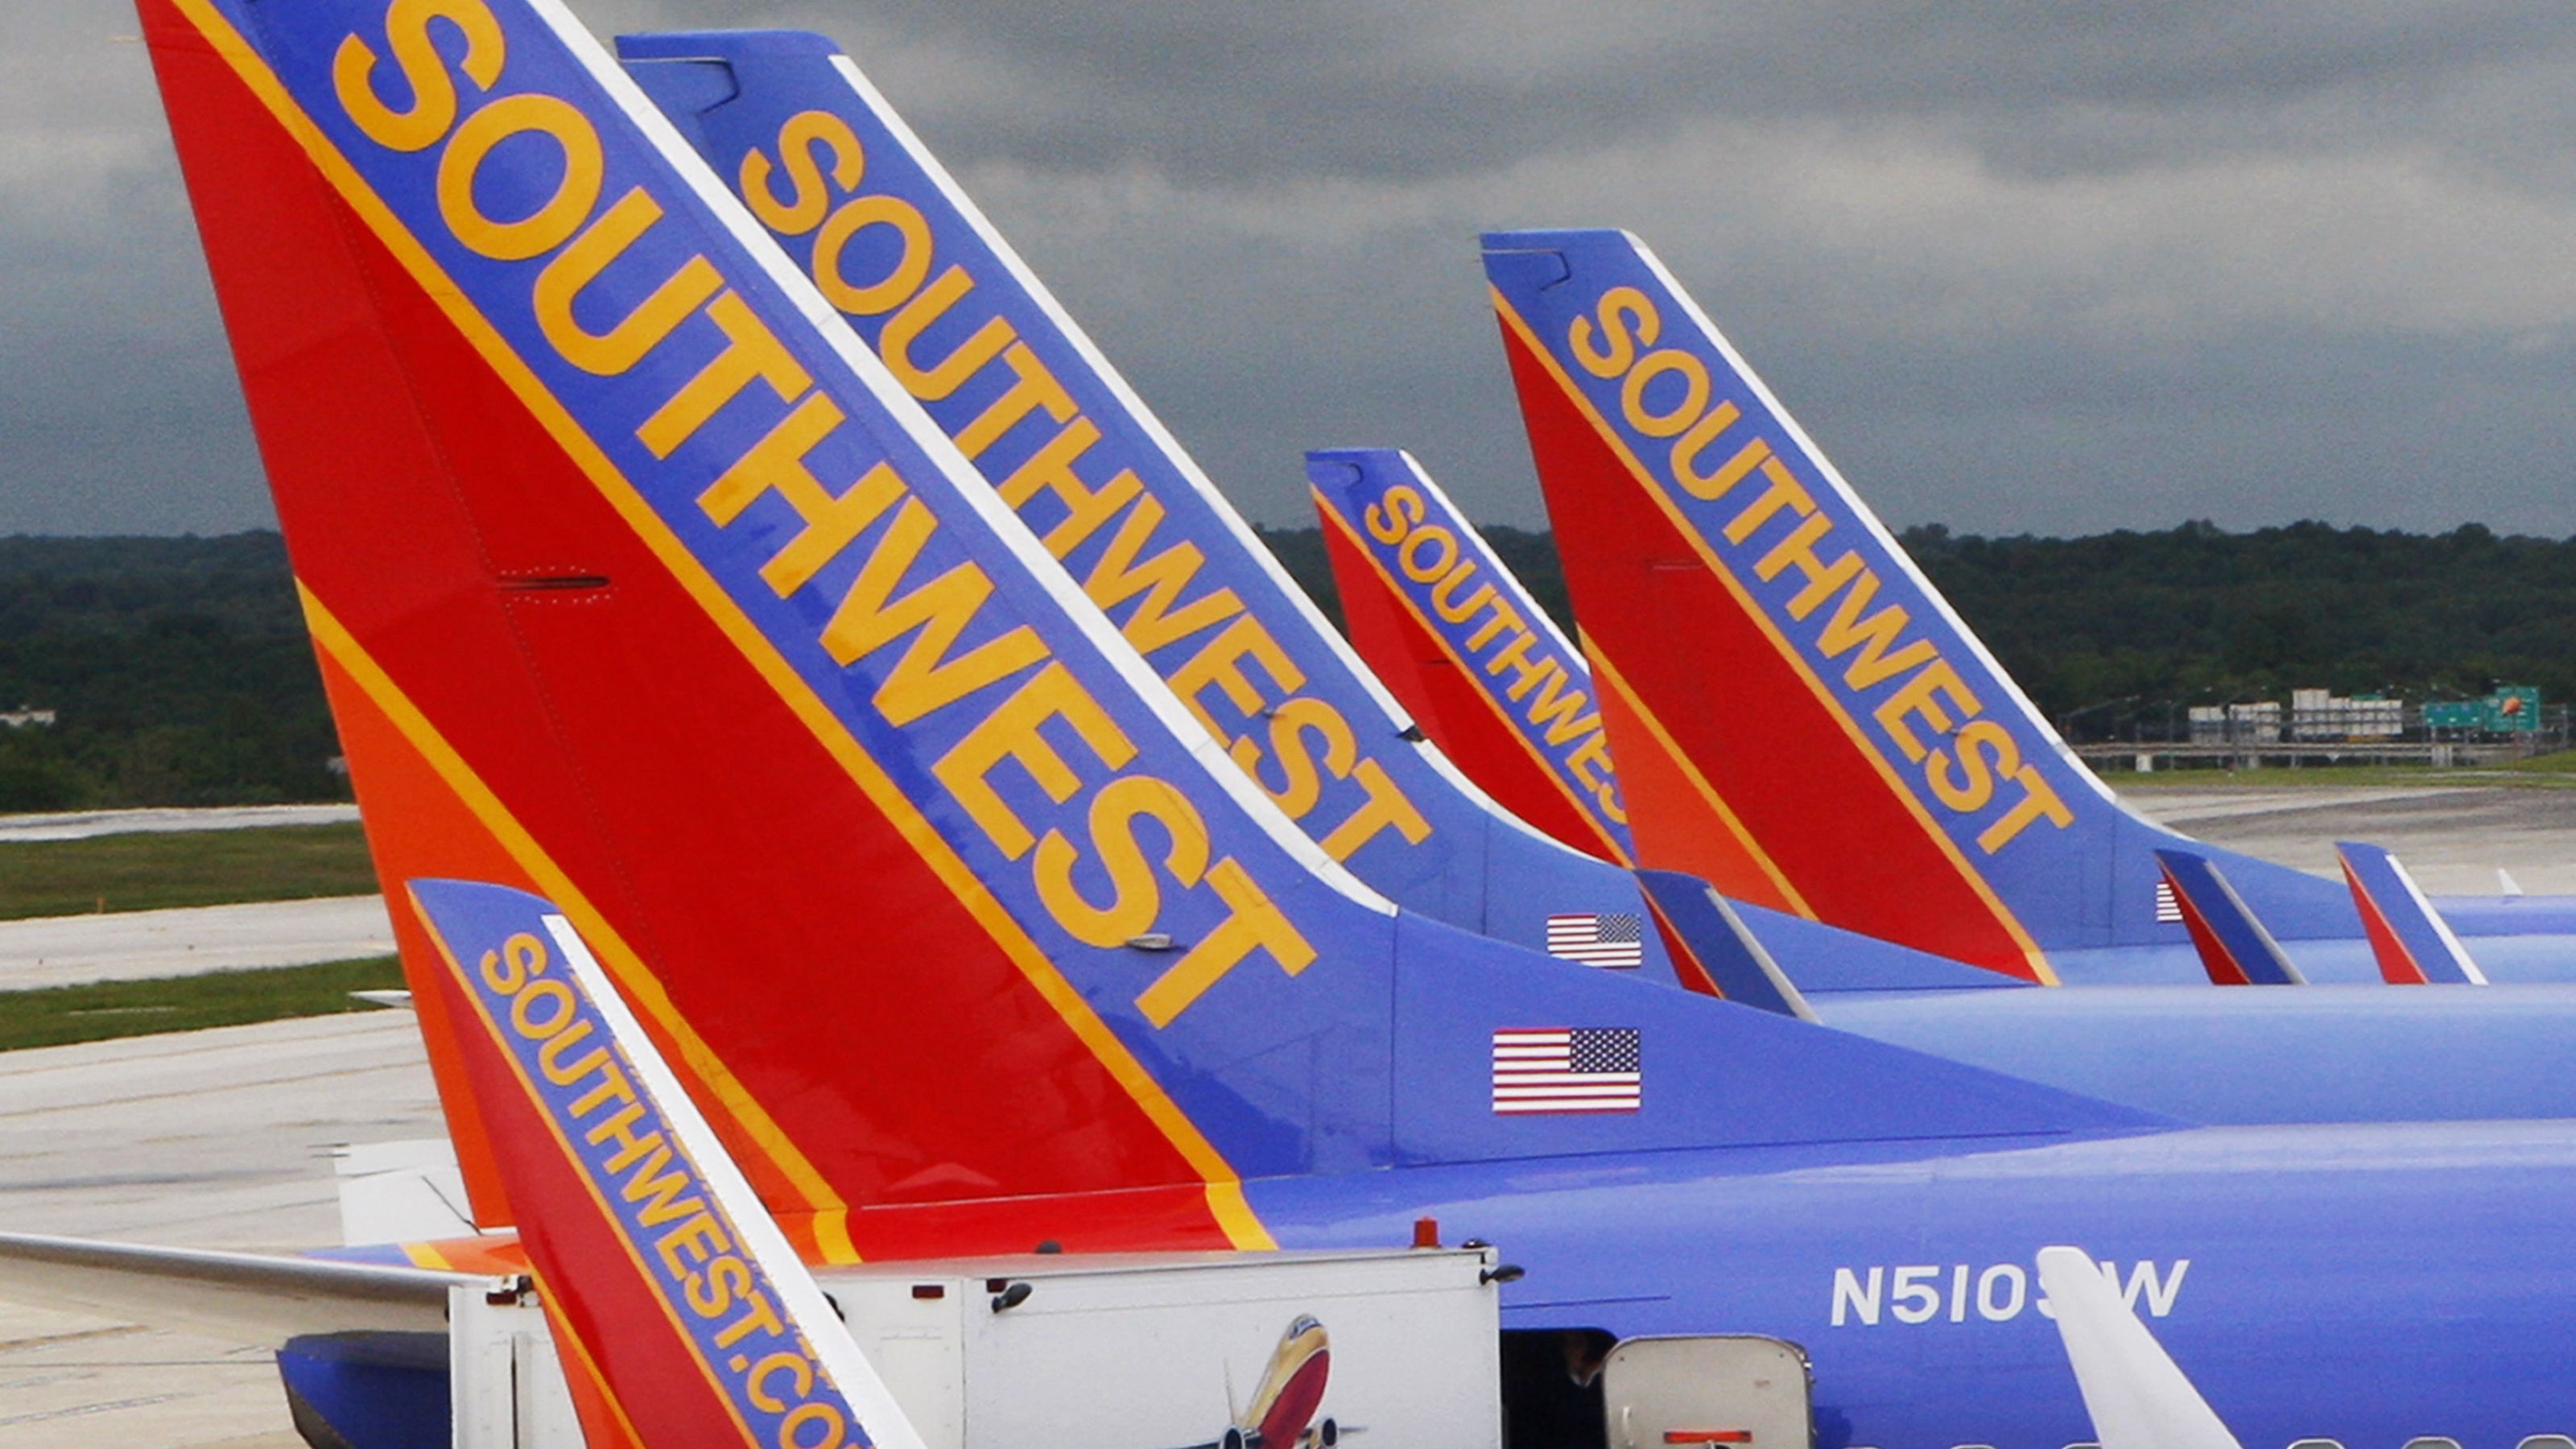 Get it while you can! Southwest fares drop below $100 round trip in 72-hour sale!